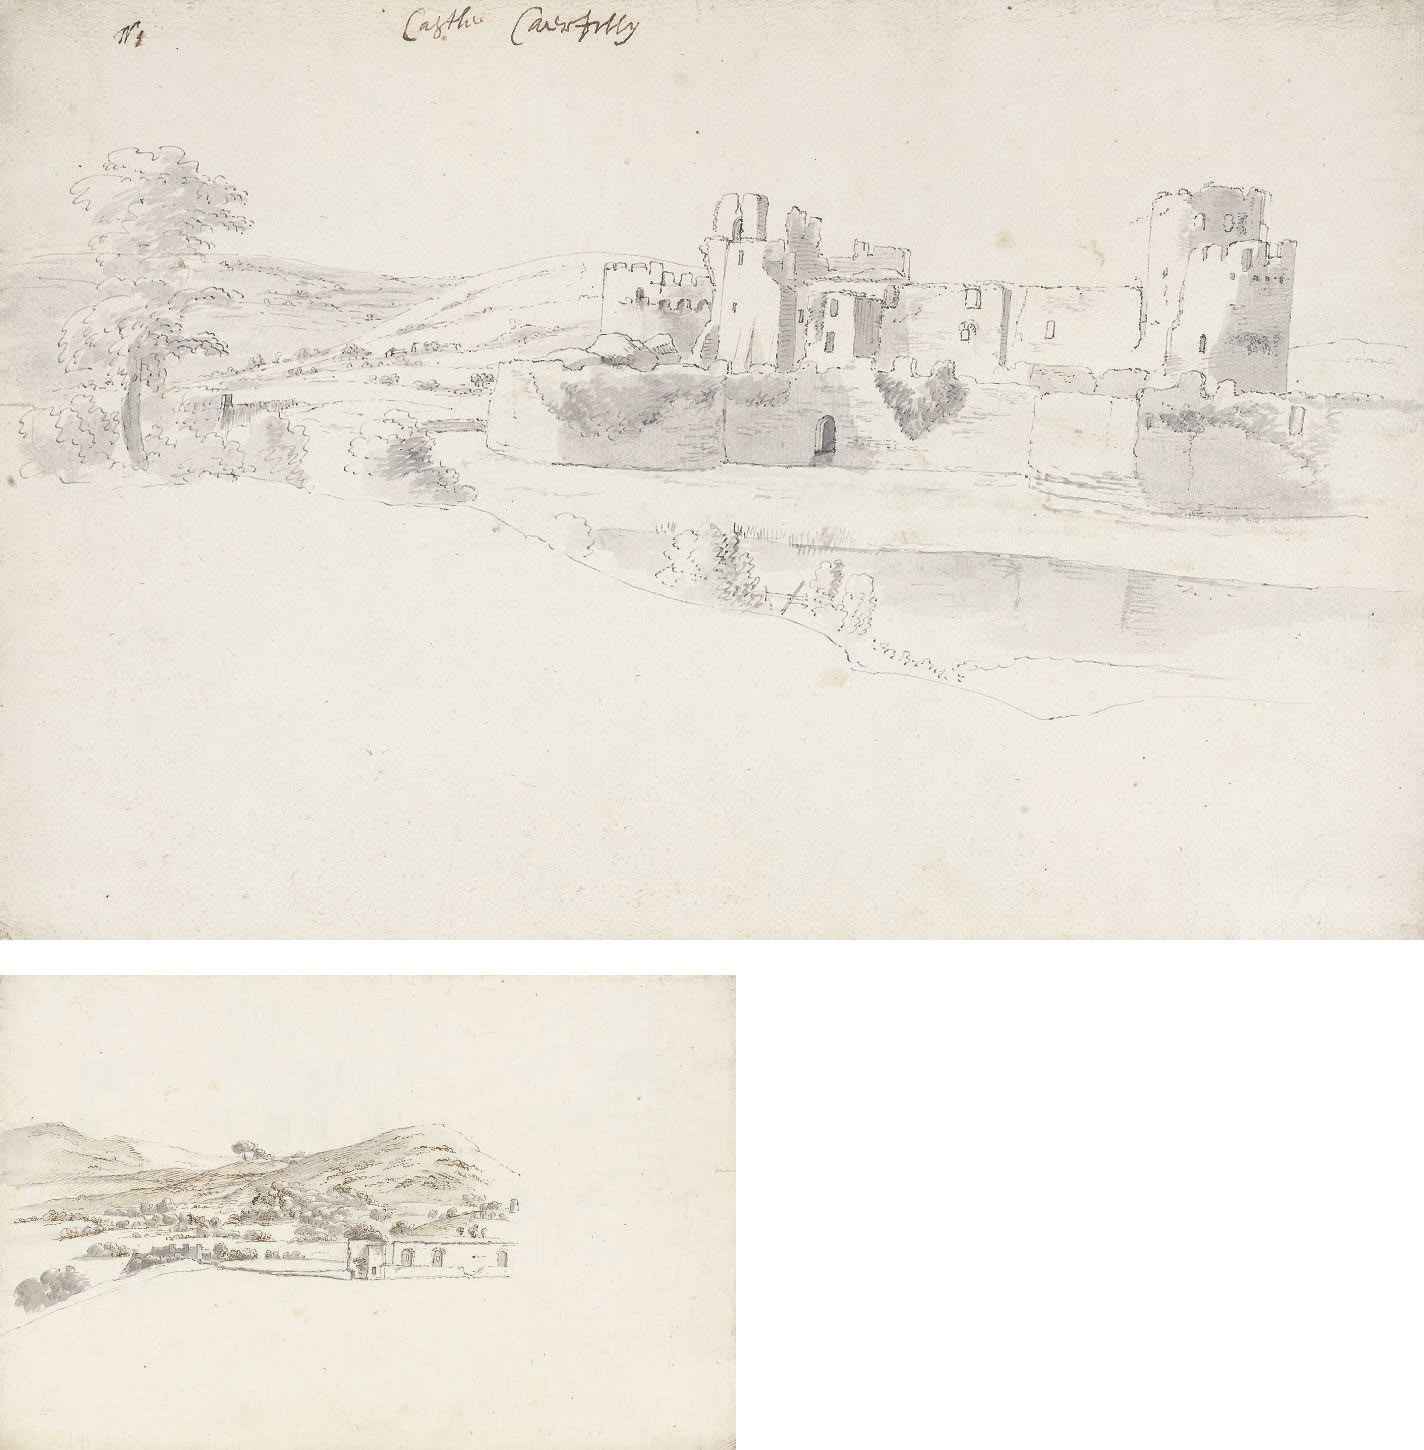 Caerphilly Castle, South Wales (recto); and A study of part of the Castle from the north-east (verso)